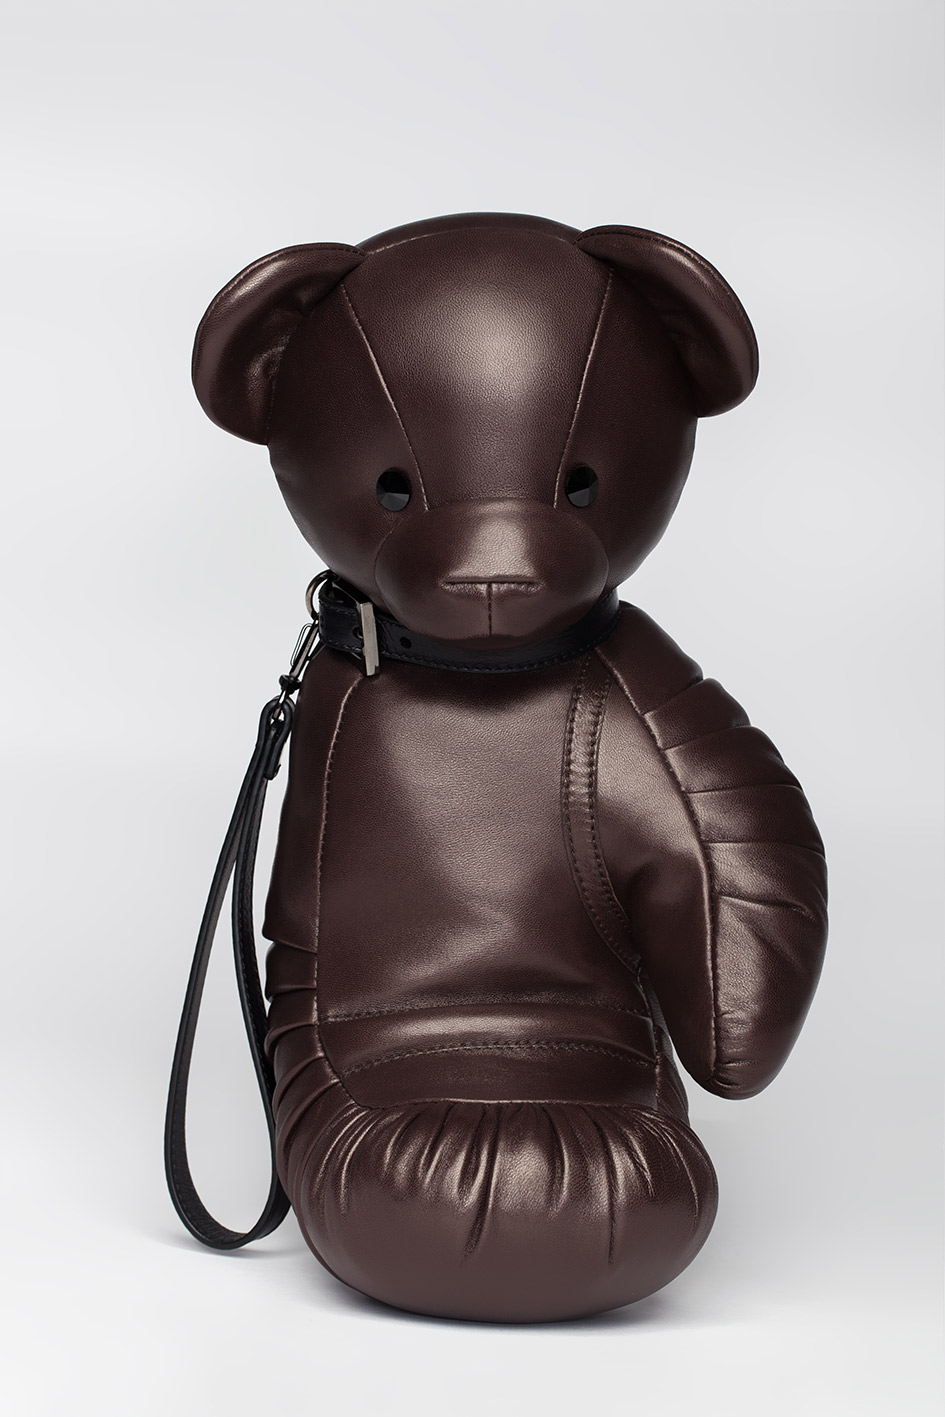 Teddy Bag by Lancy Kimmy on curated-crowd.com